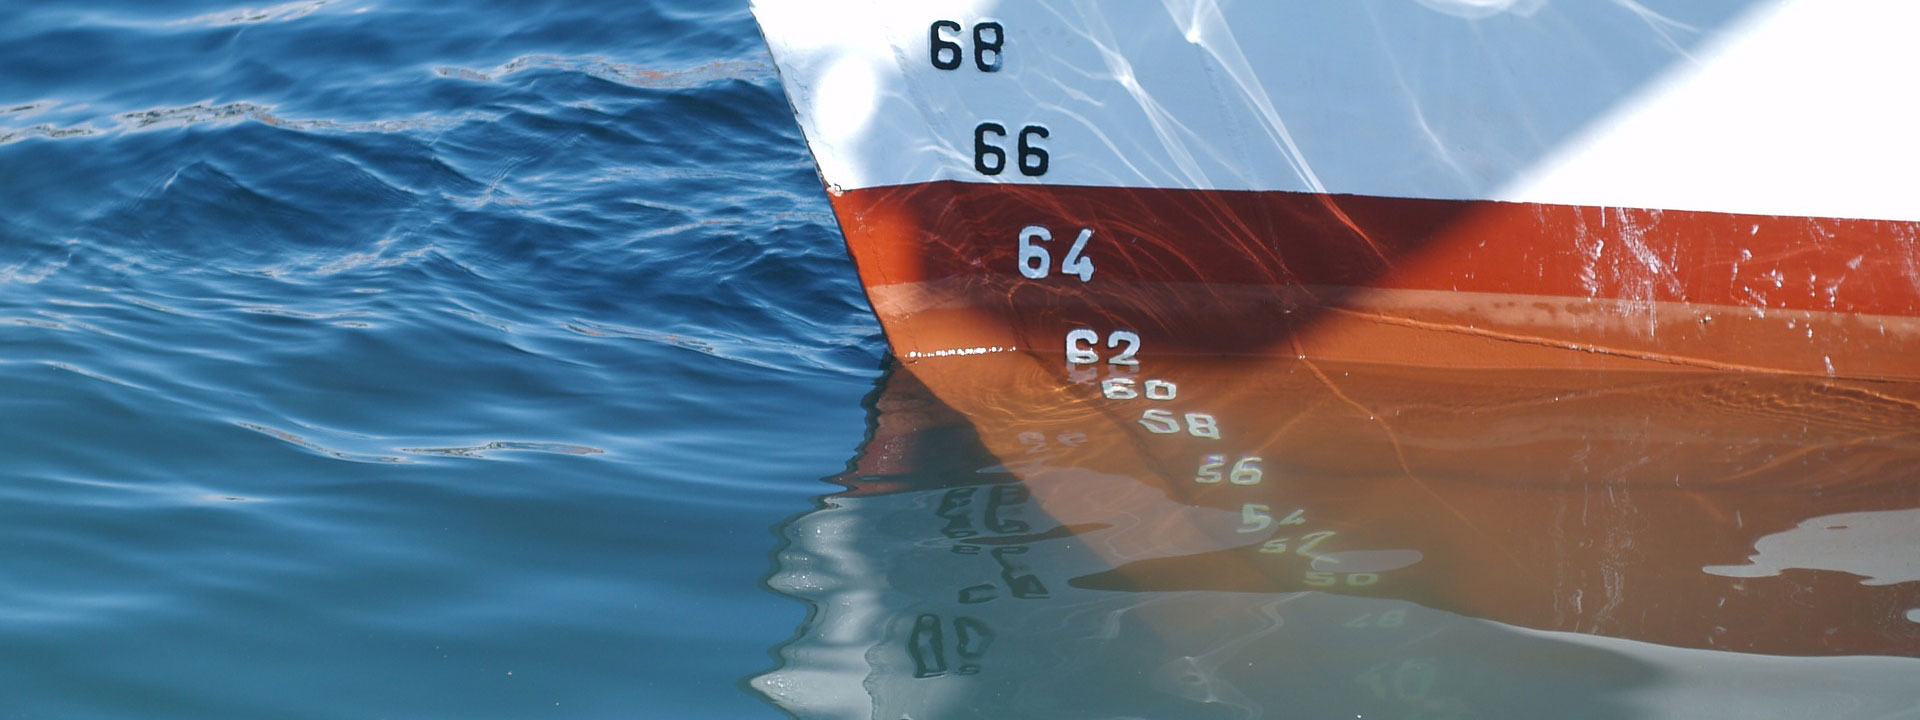 image of boat in water measuring sea level